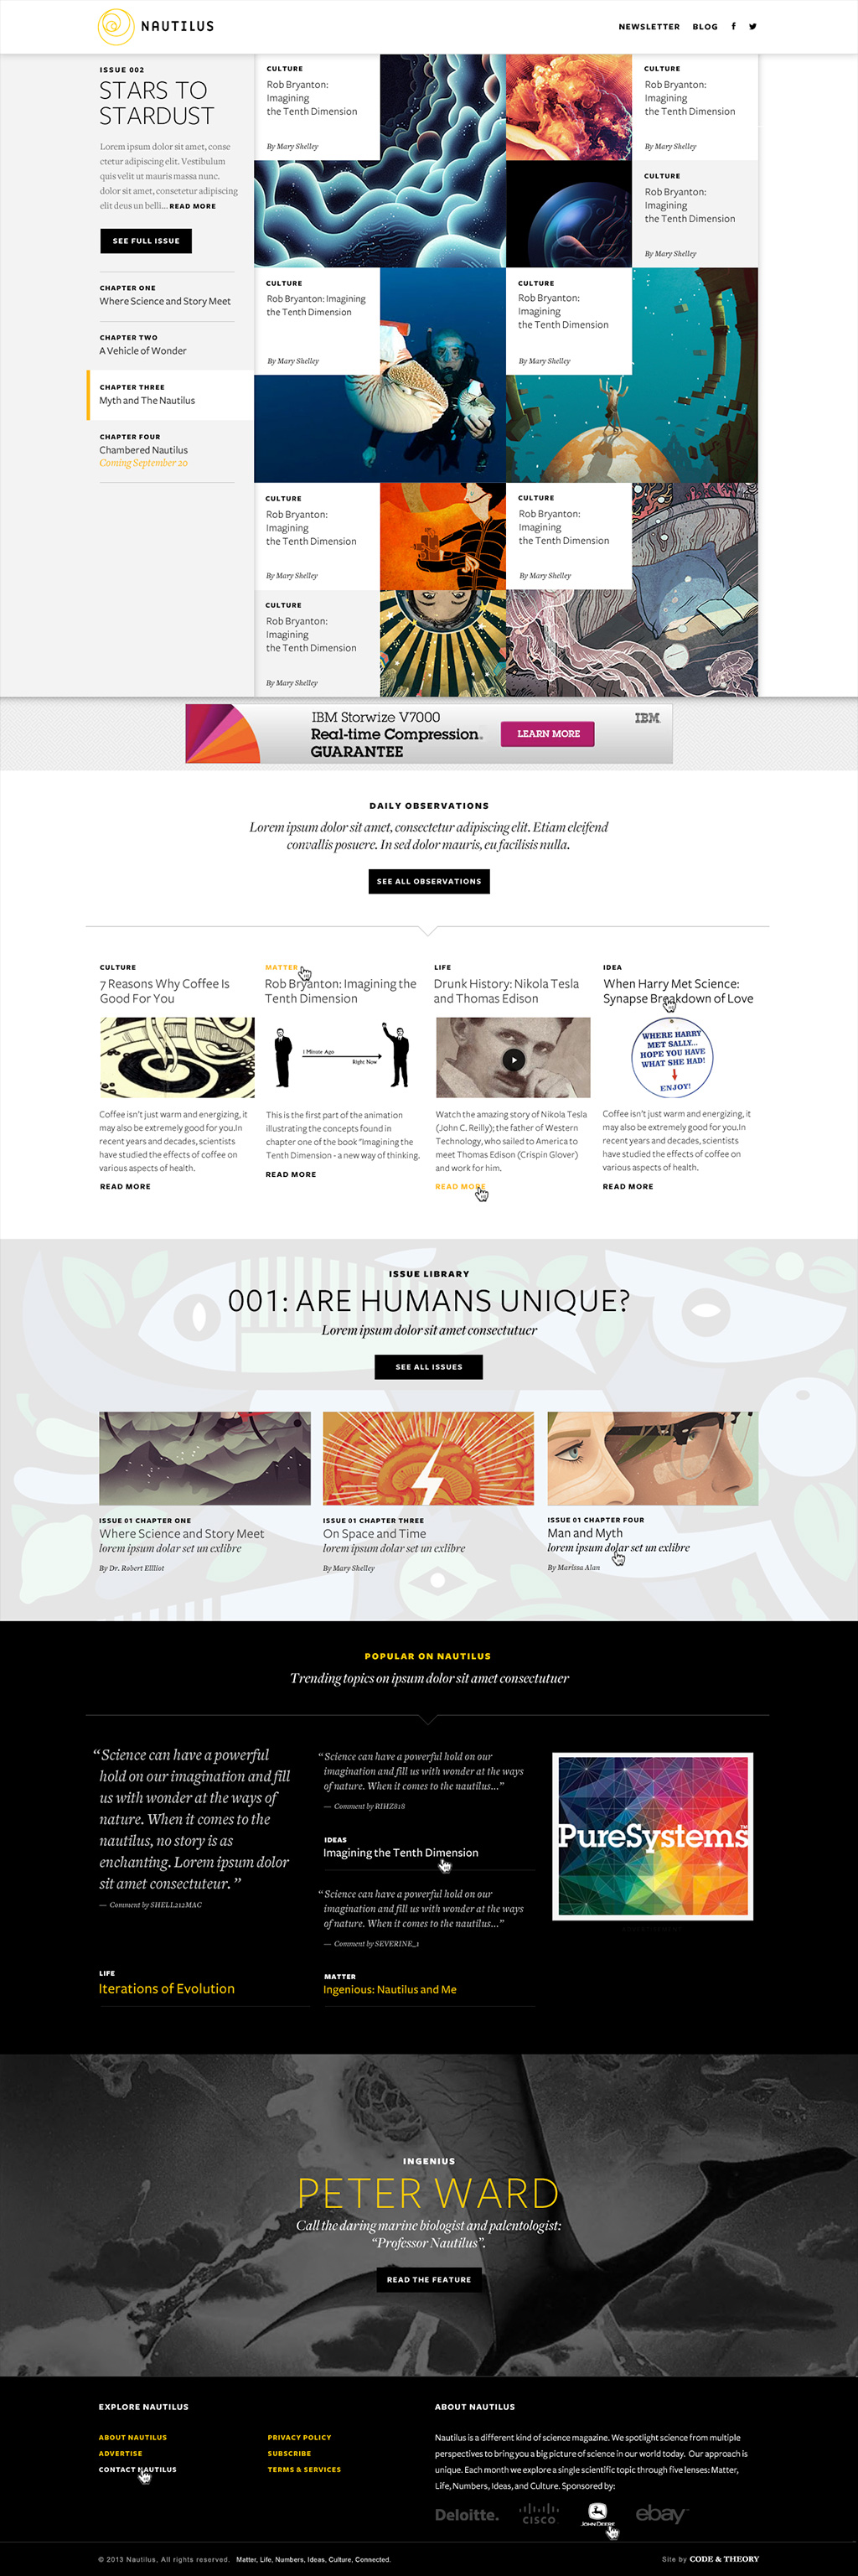 Responsive Philosophy Things We Make Code And Theory Web Design Trends Web Design Code And Theory